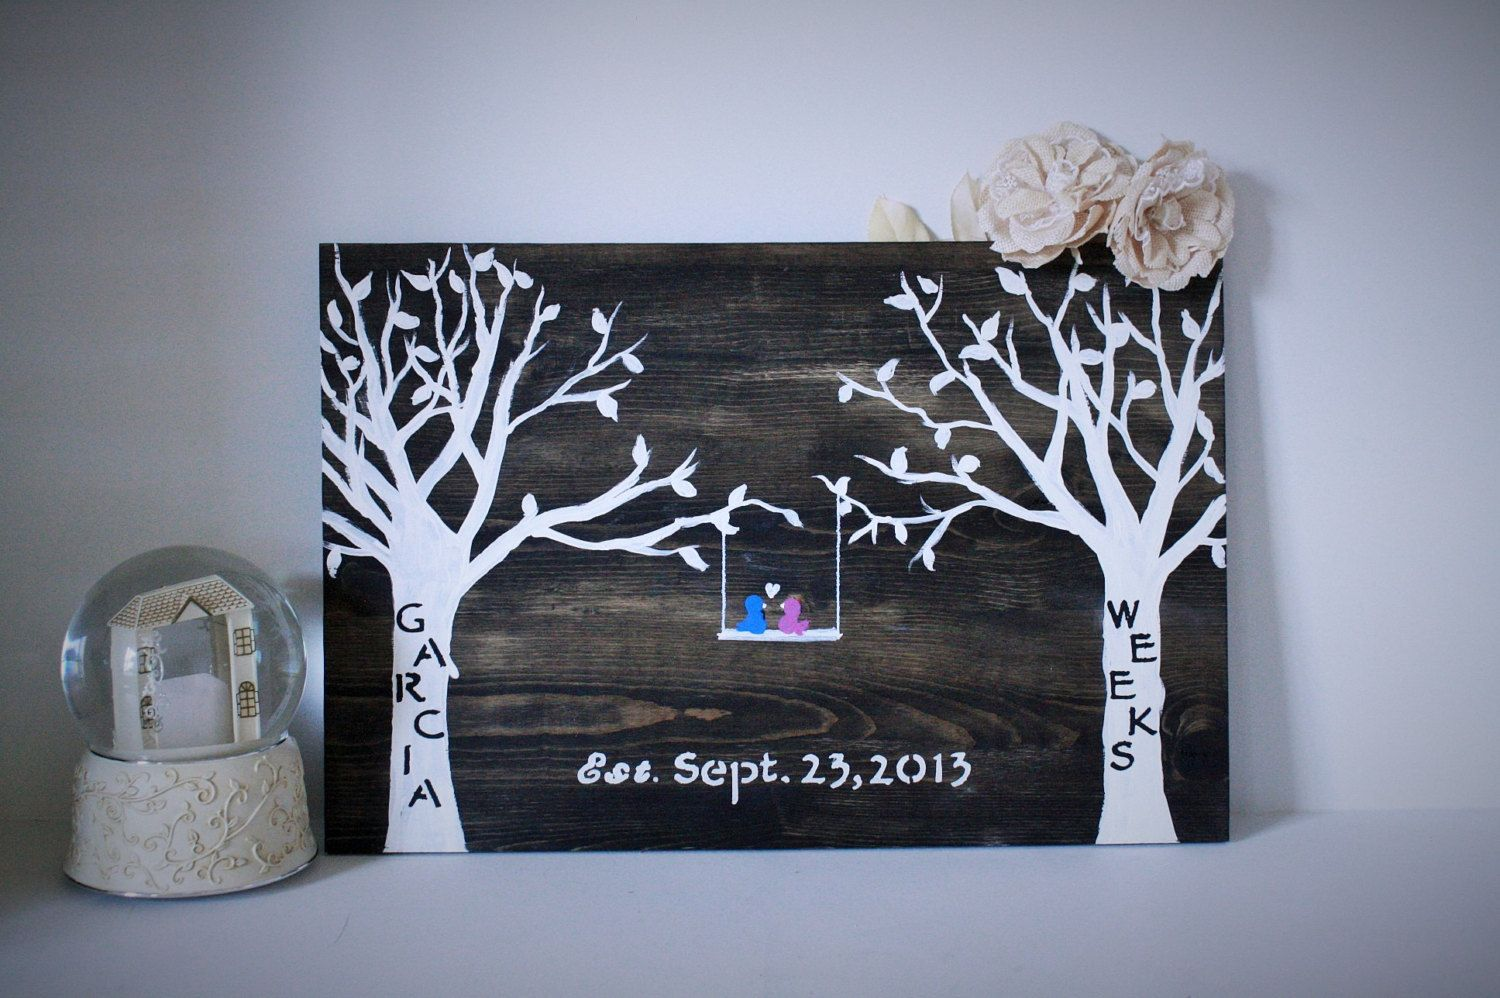 Wooden Wall Art Family Tree Wedding Date Sign Monogrammed Sign